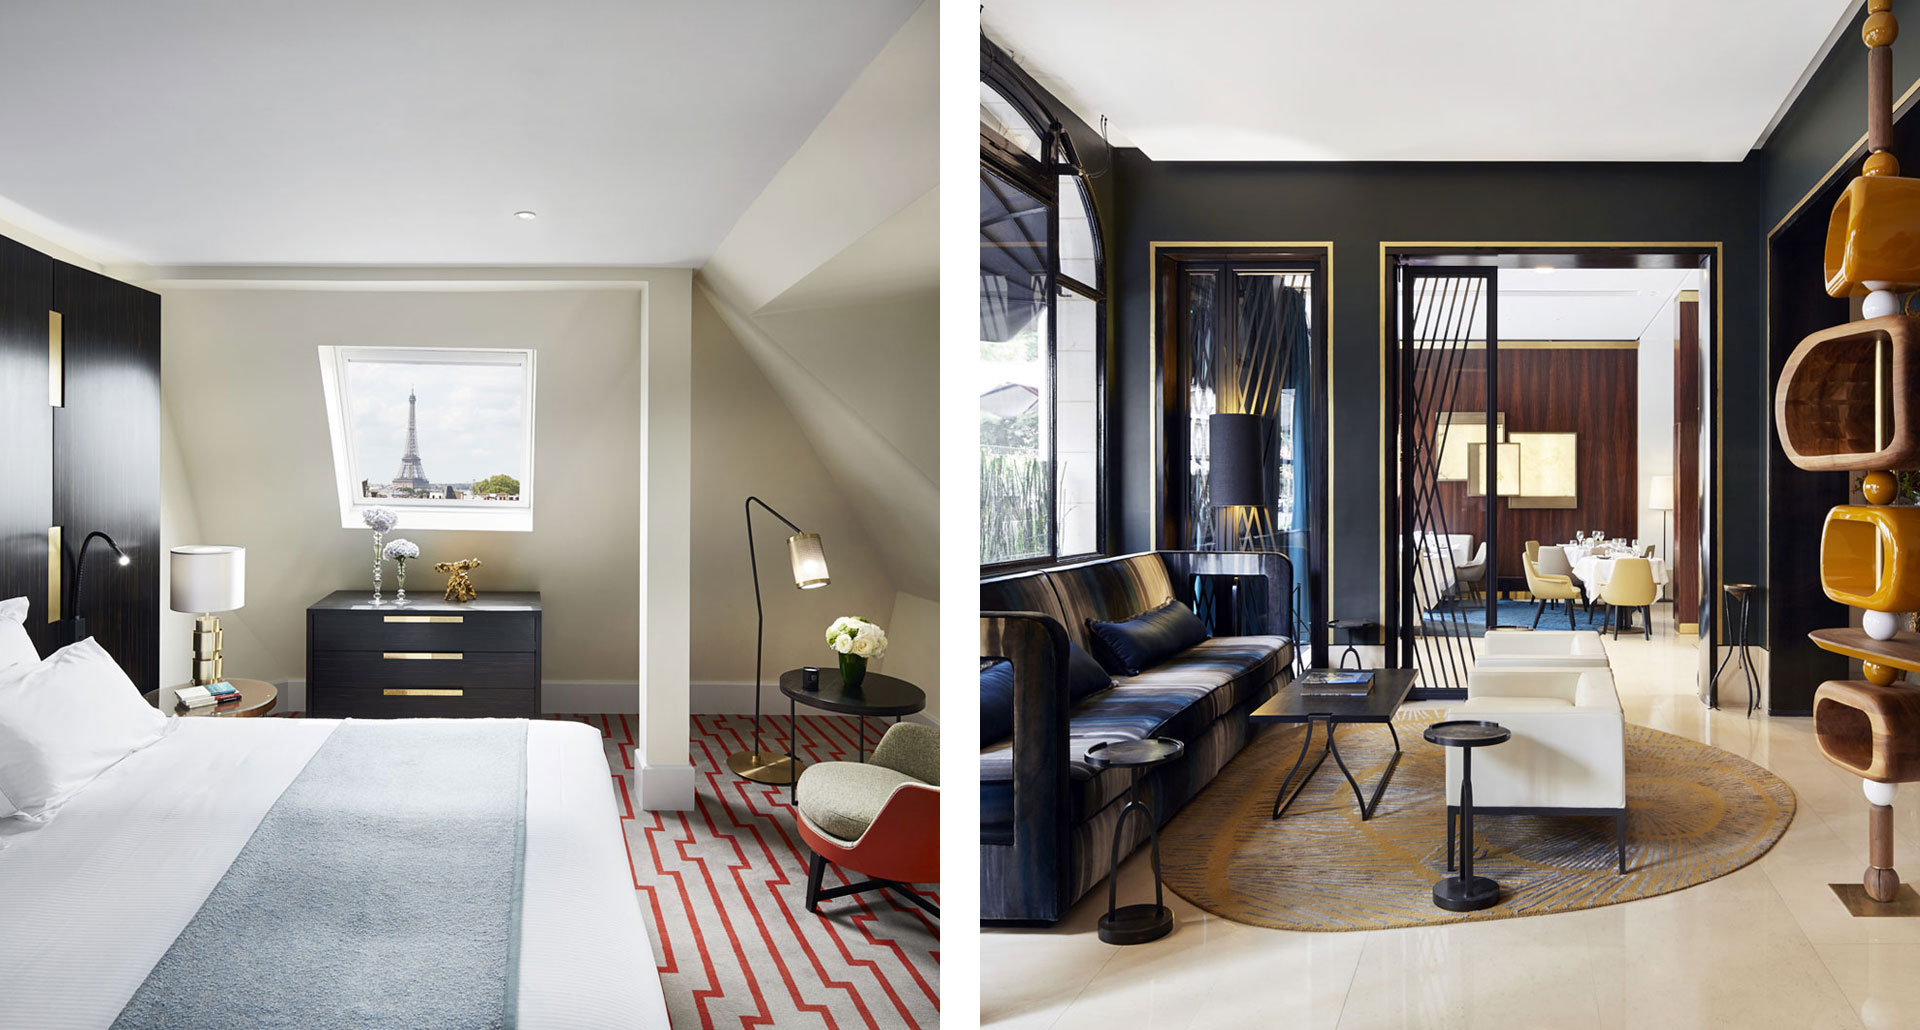 Hotel Montalembert - boutique hotel in Paris